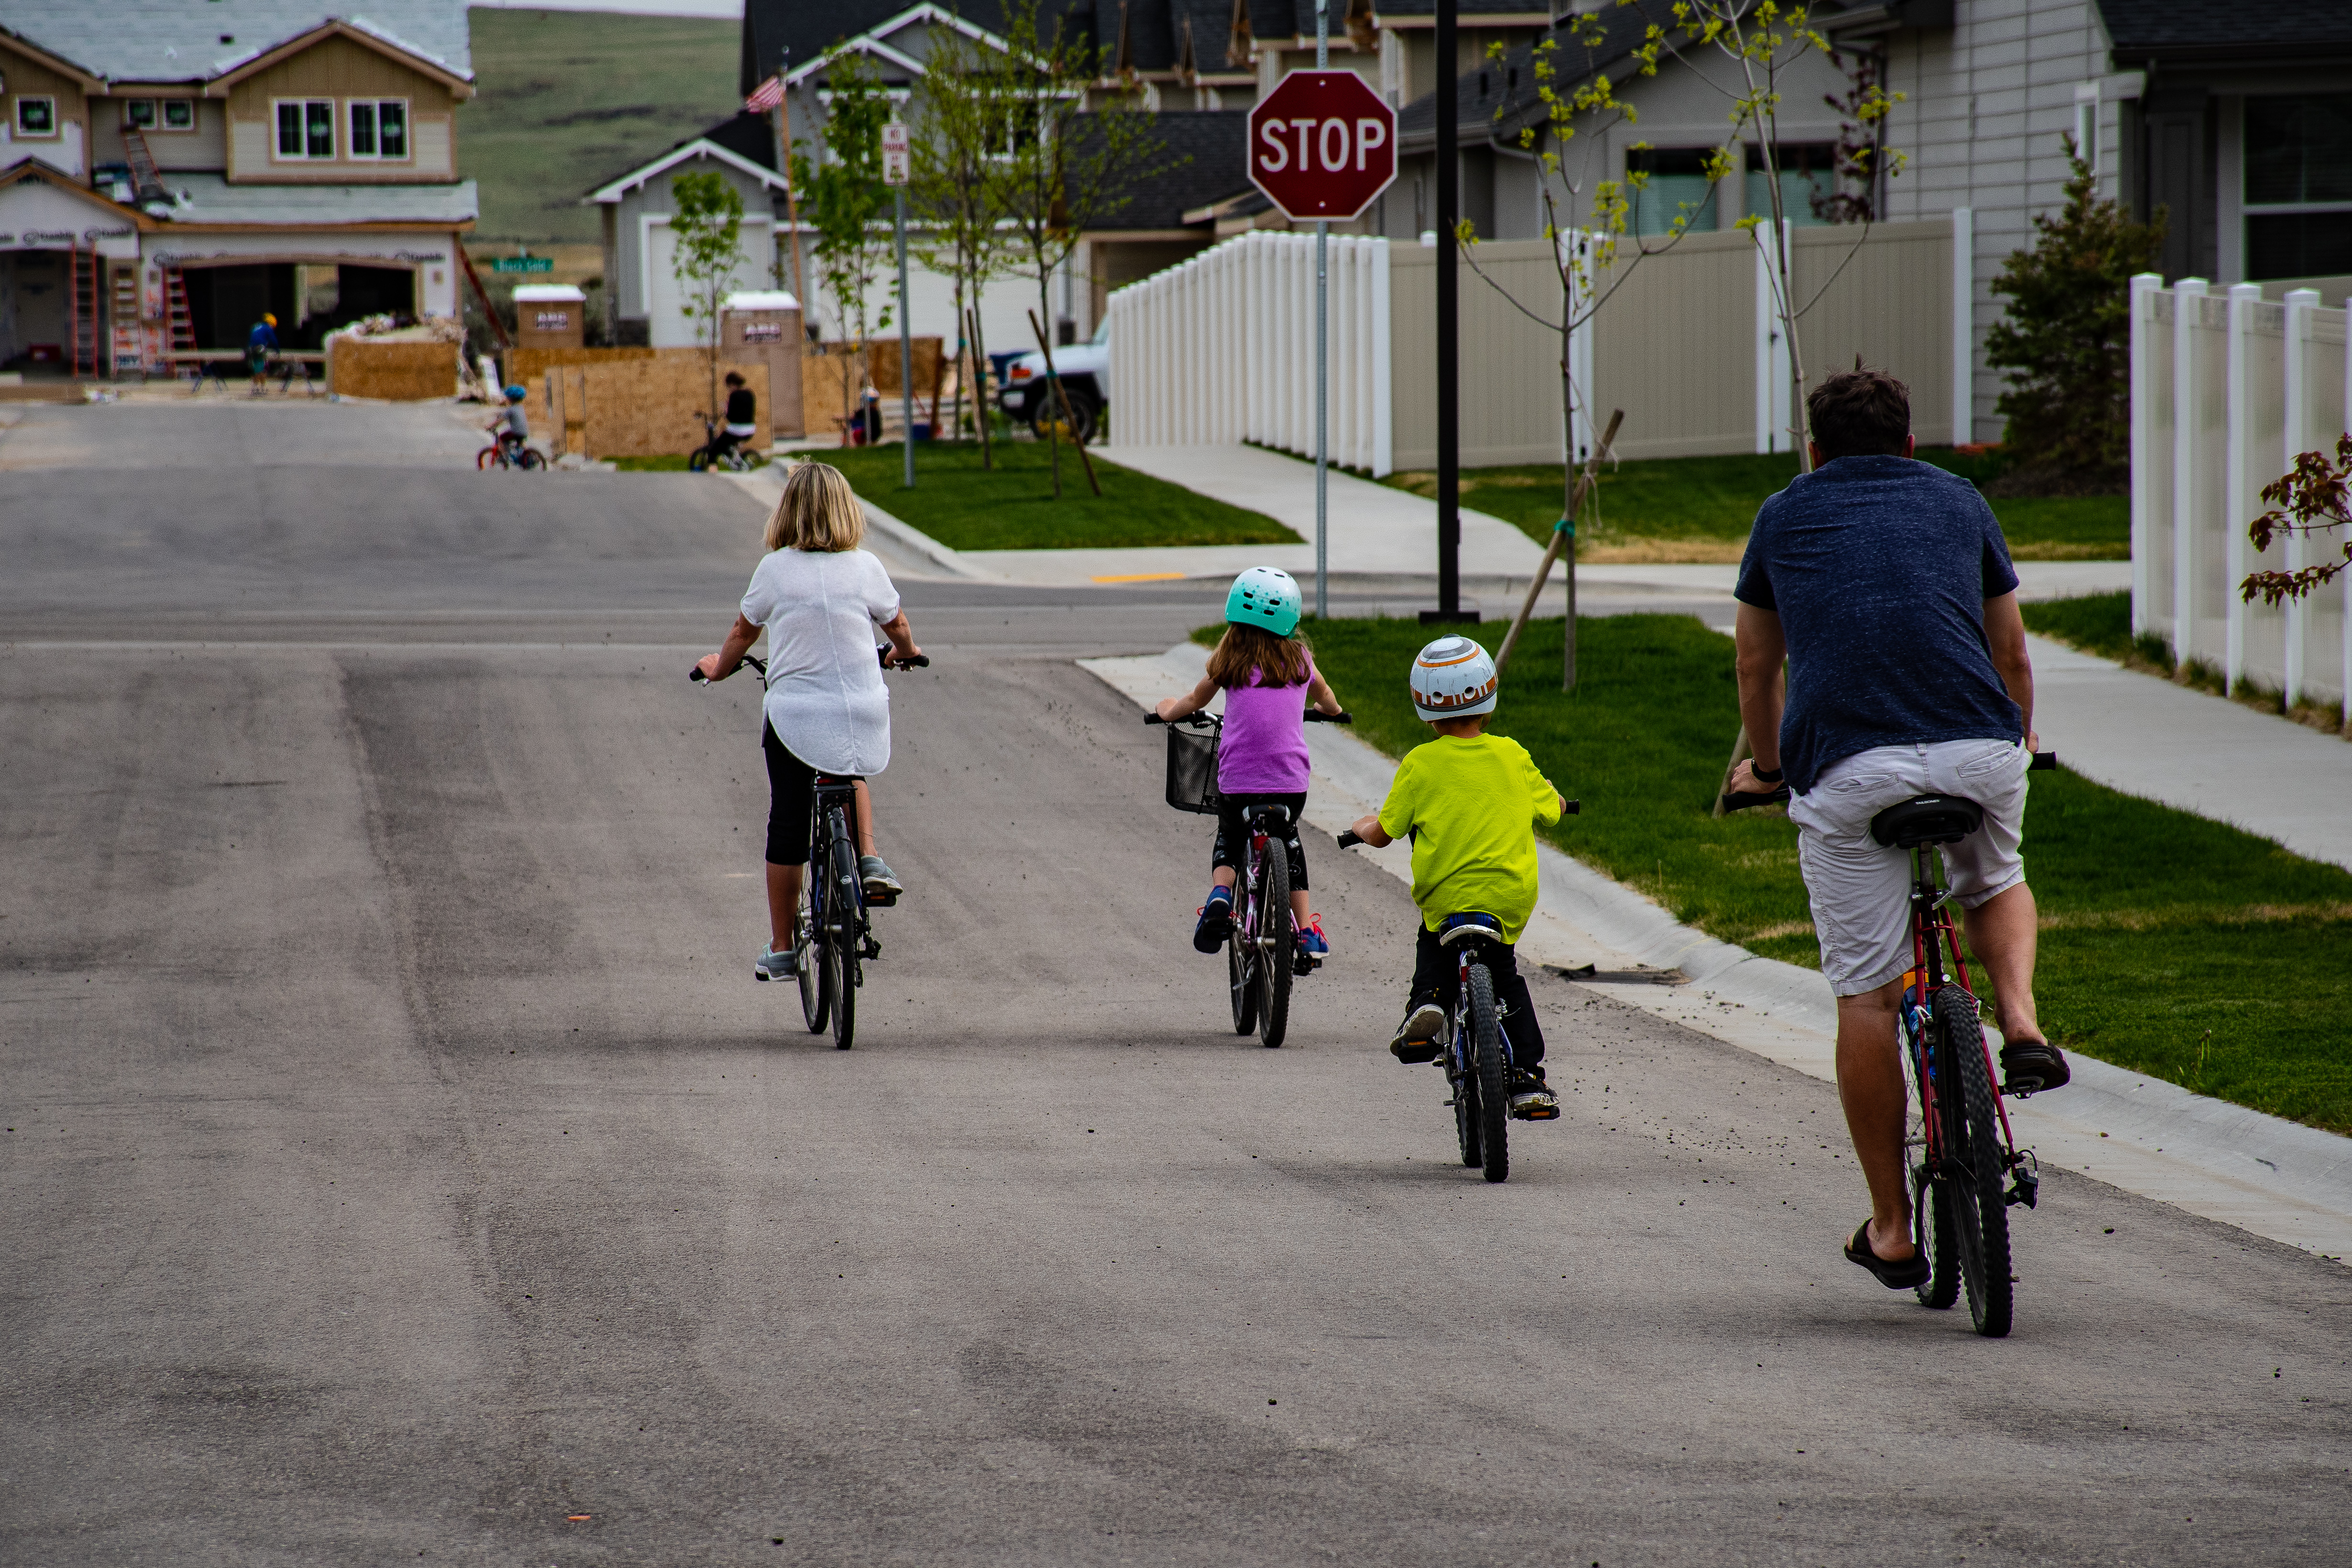 Canva - Family Riding on Bicycle